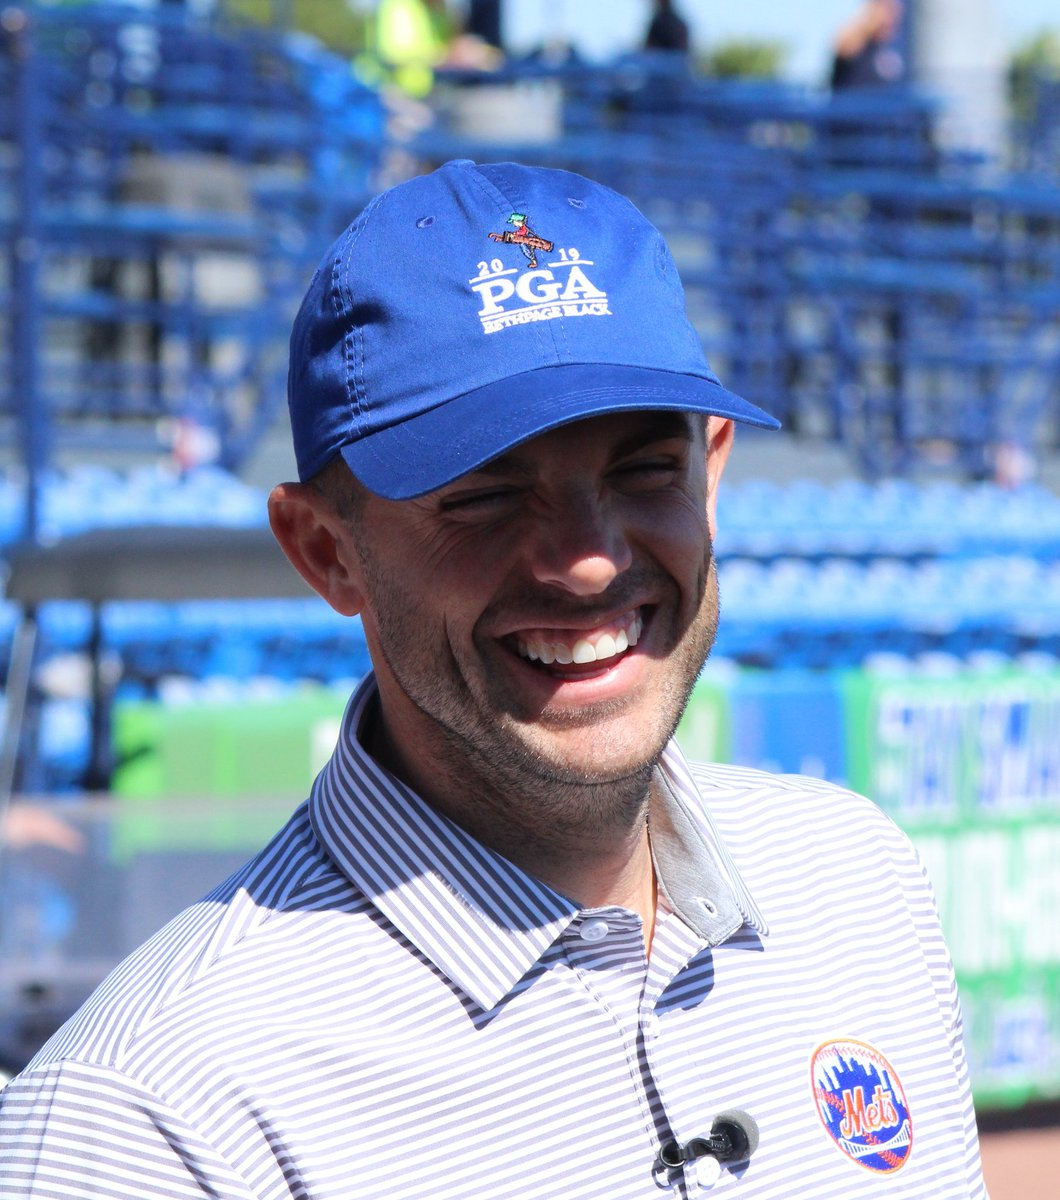 David Wright has signed on to be an ambassador for the 2019 PGA Championship at Bethpage Black. He received a passing of the torch today from the 2018 ambassador, Ozzie Smith. &quot;What a downgrade from last year,&quot; Wright quipped. <br>http://pic.twitter.com/2TGJYCfRGu